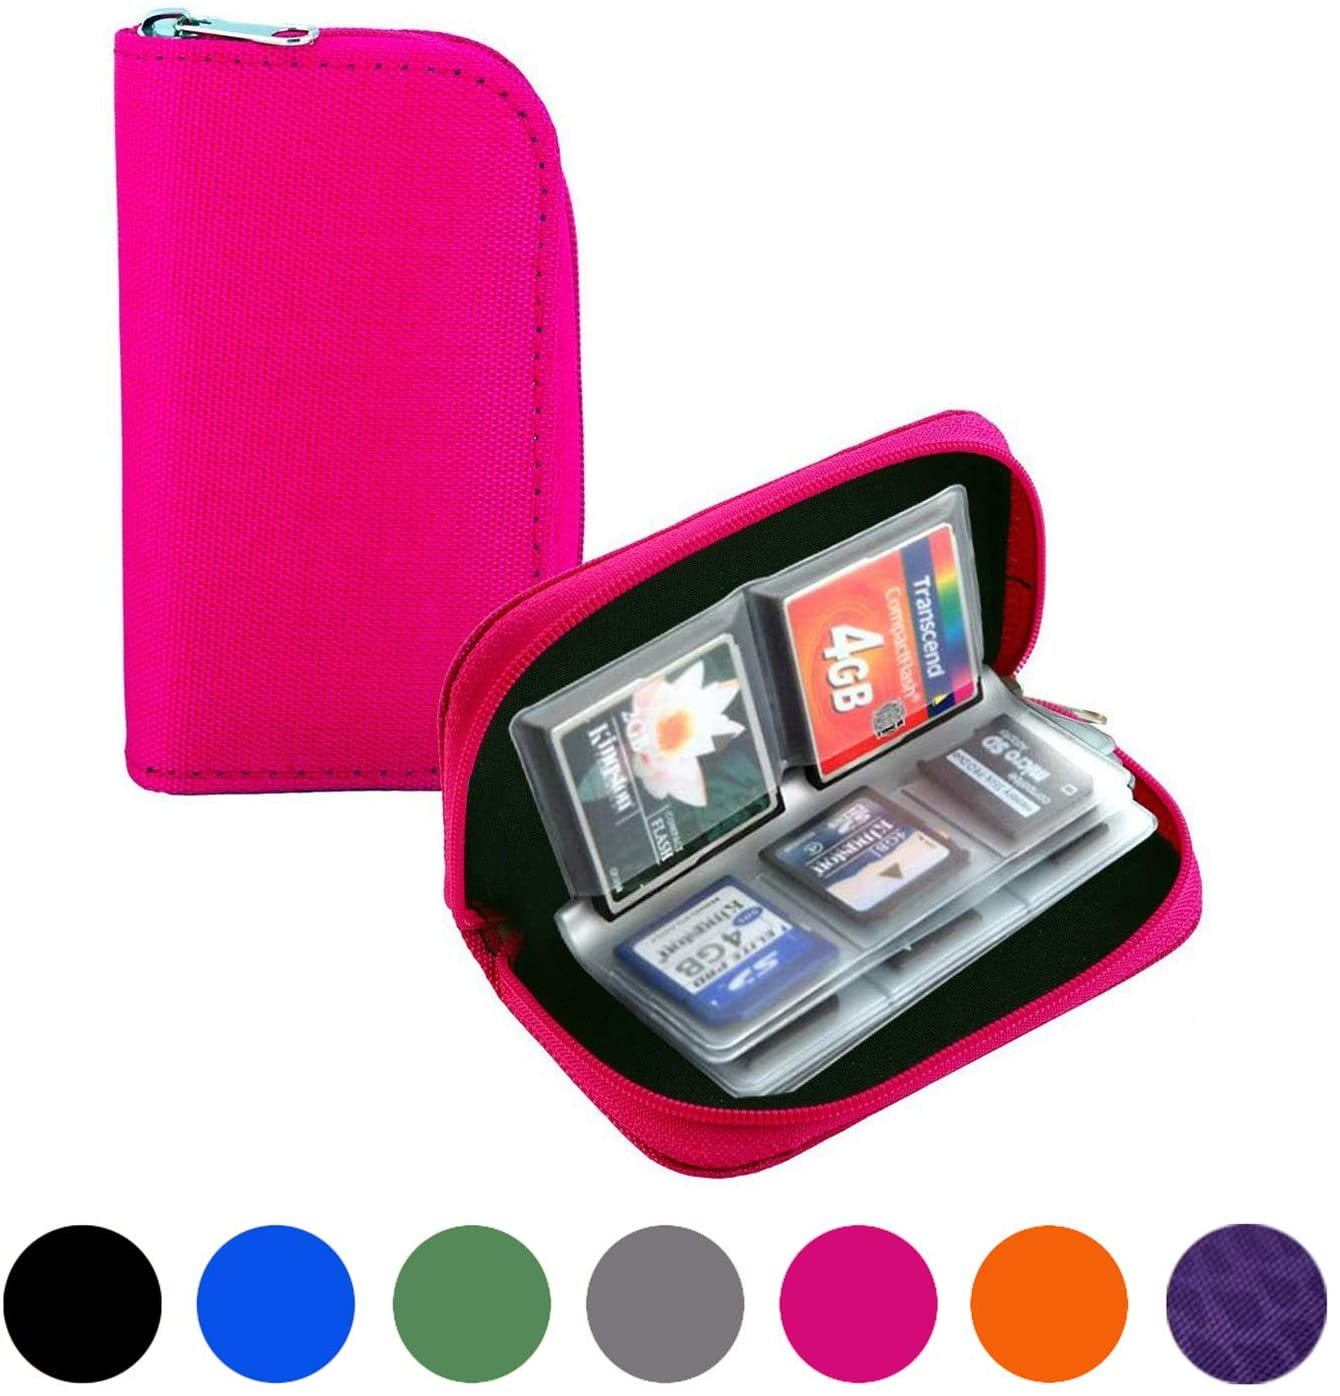 Mixtecc Memory Card Case - Carrying Case Suitable for SDHC/SD Cards, with 8 Pages and 22 Slots Card Holder Bag Wallet for Media Storage Organization (Pink)